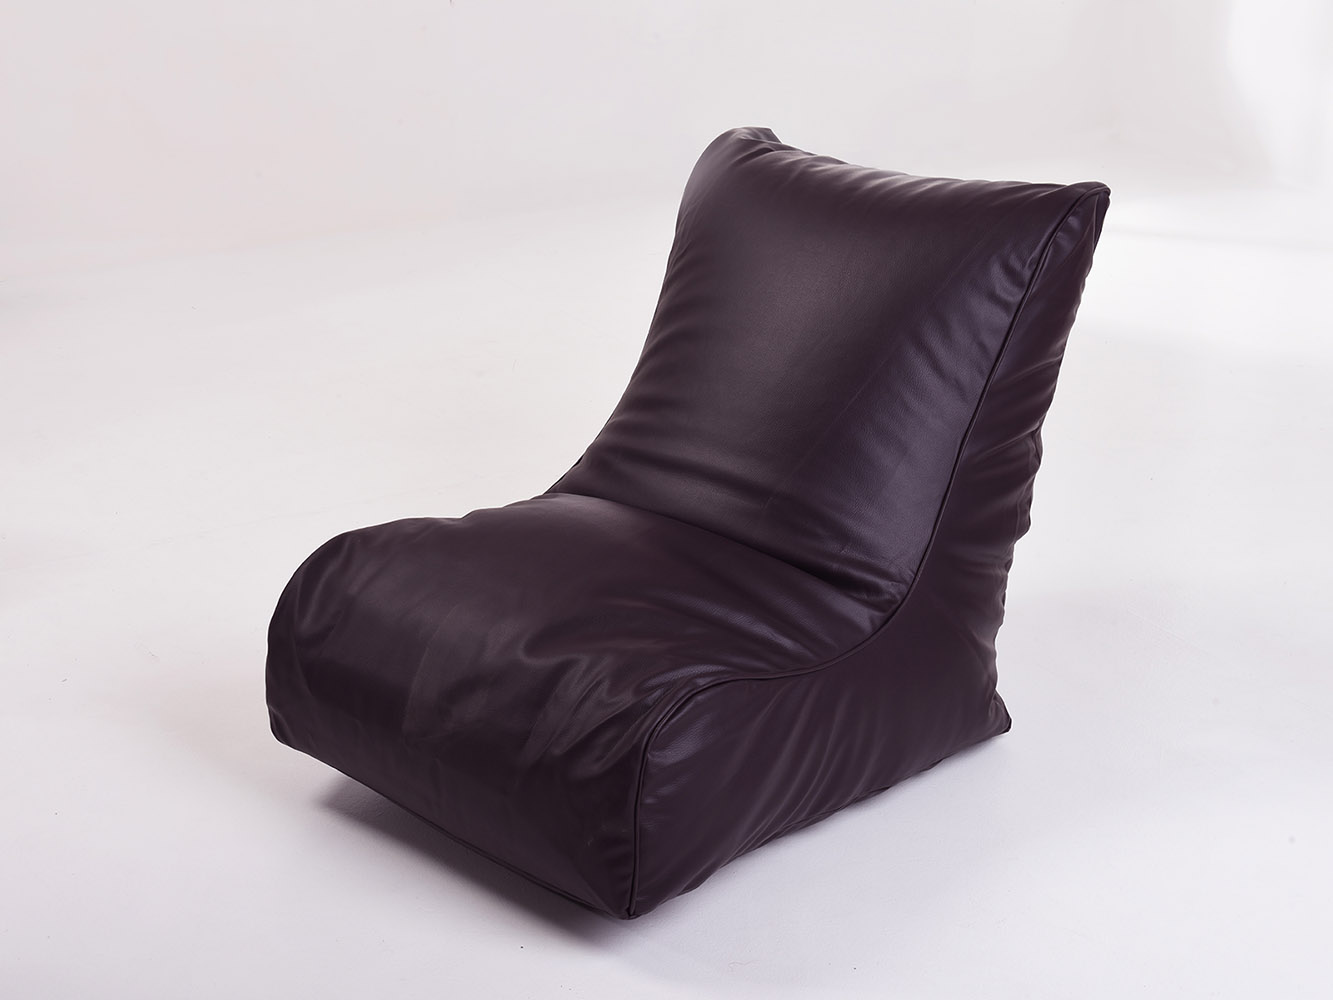 Beanbag Chair Beanbag Gaming Gamer Chair Adult Bean Bag Aubergine